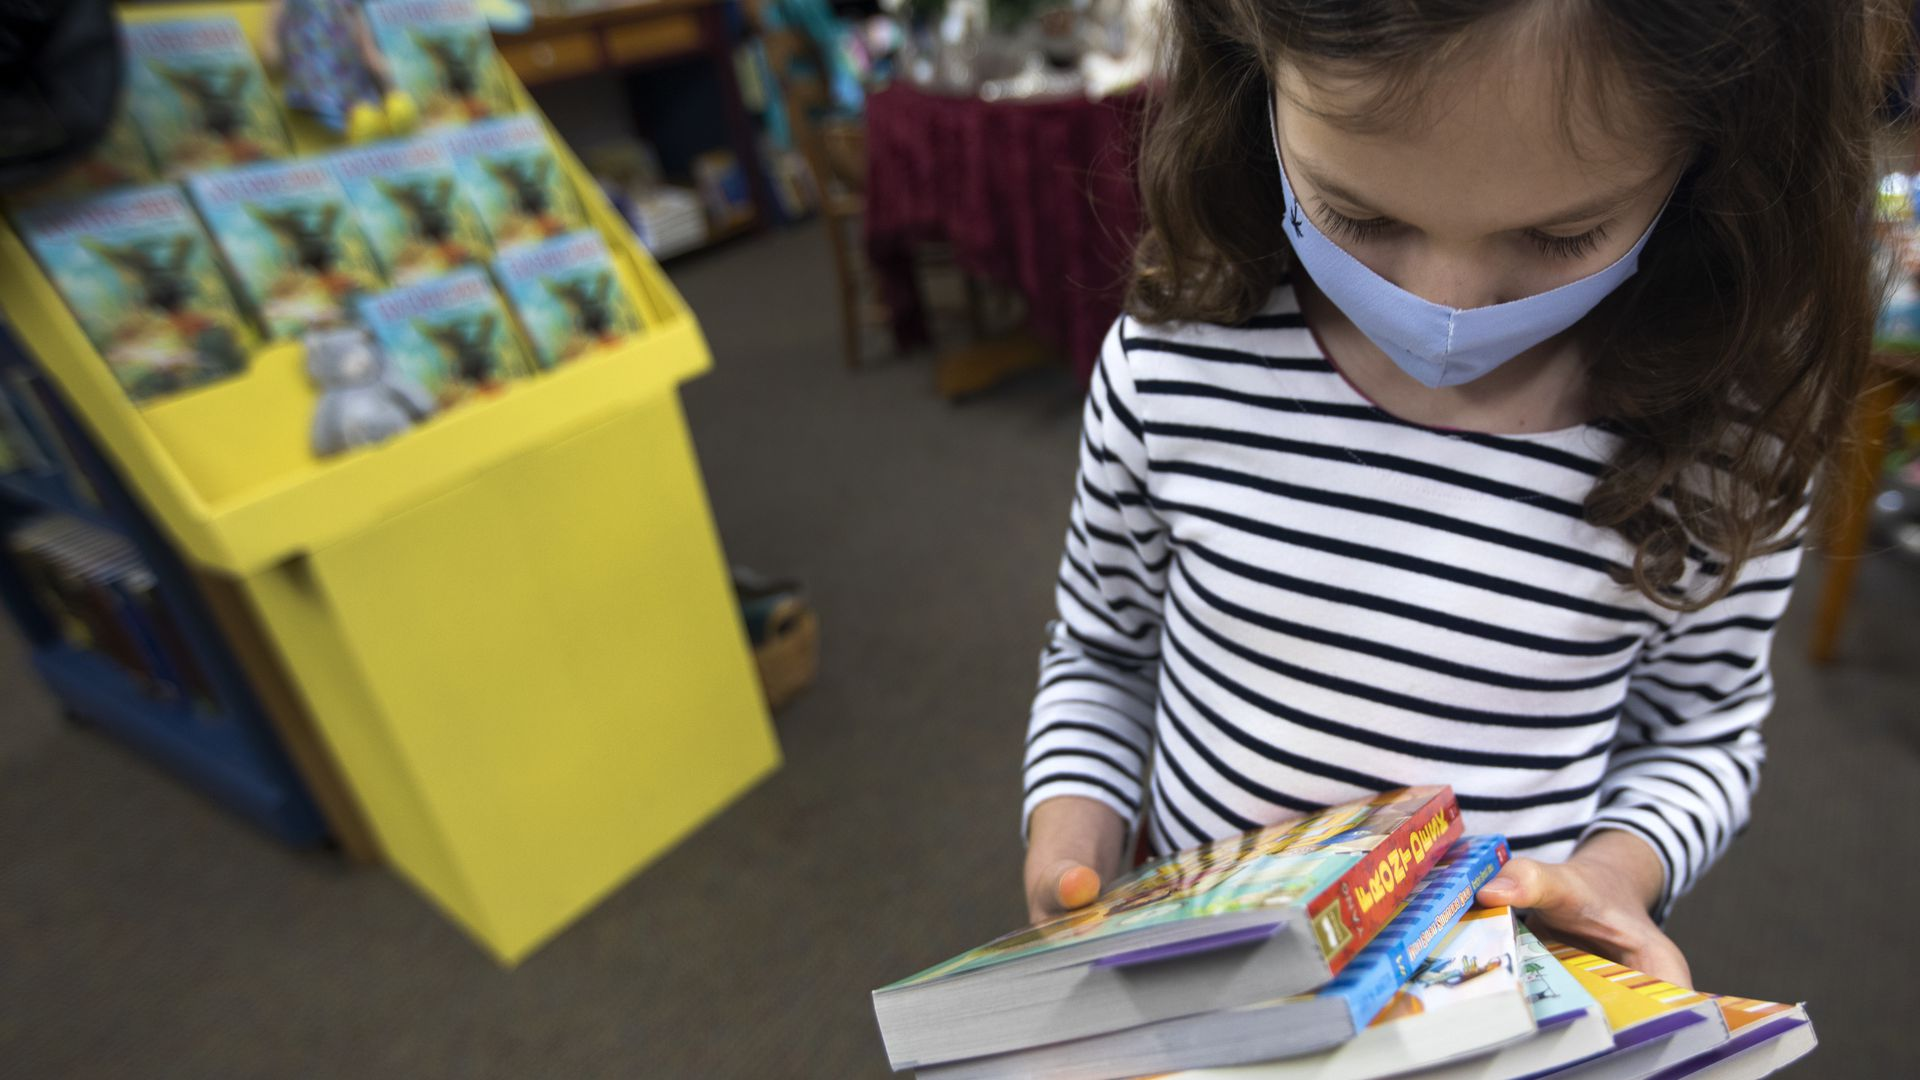 Maureen Palacios is the owner of Once Upon a Time Bookstore in Montrose, the country's oldest children's bookstore. Now, Once Upon a Time is struggling during the pandemic.